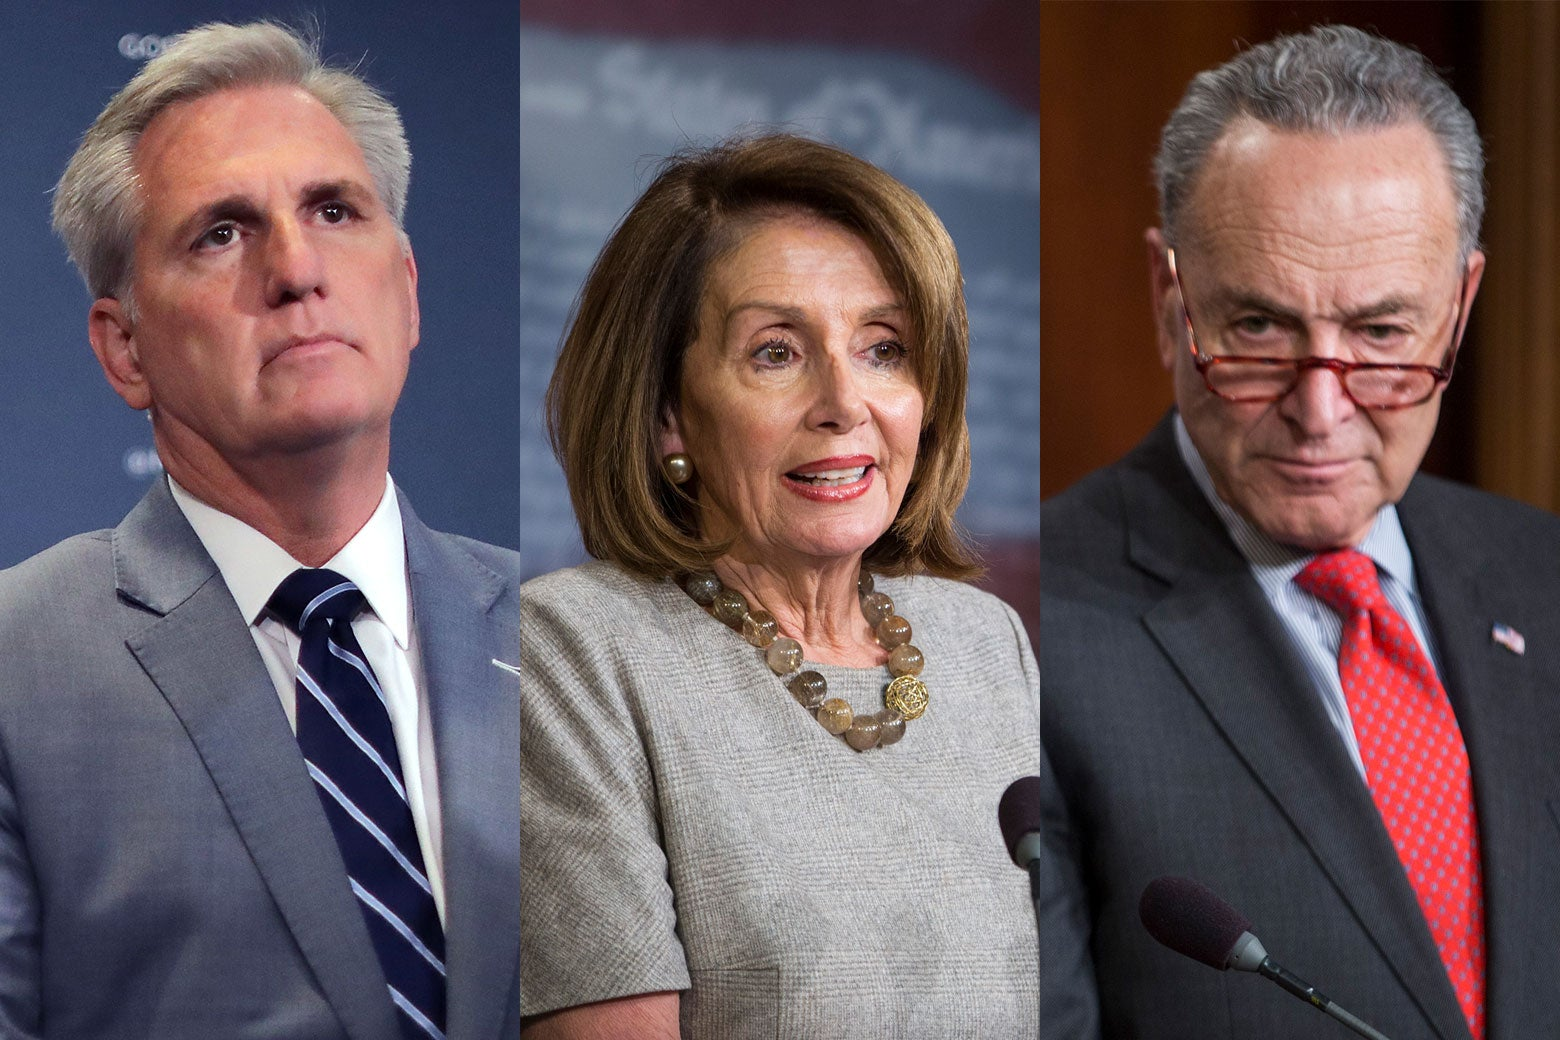 Side-by-side photos of House Minority Leader Kevin McCarthy, House Speaker Nancy Pelosi, Senate Minority Leader Chuck Schumer.